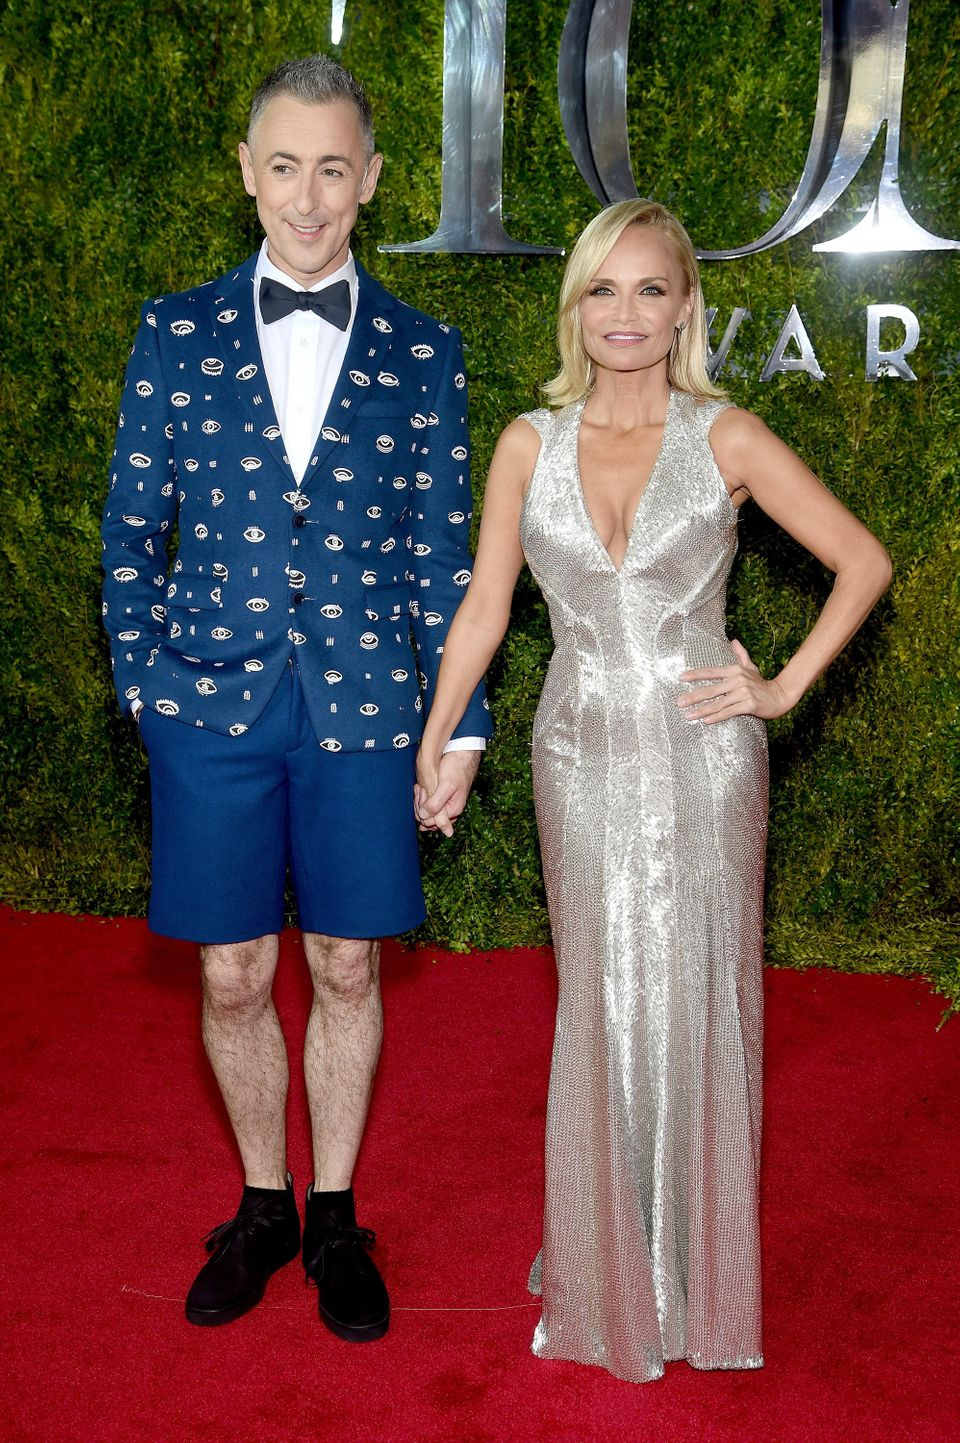 The 2015 Tony Awards at Radio City Music Hall in New York City on June 7.